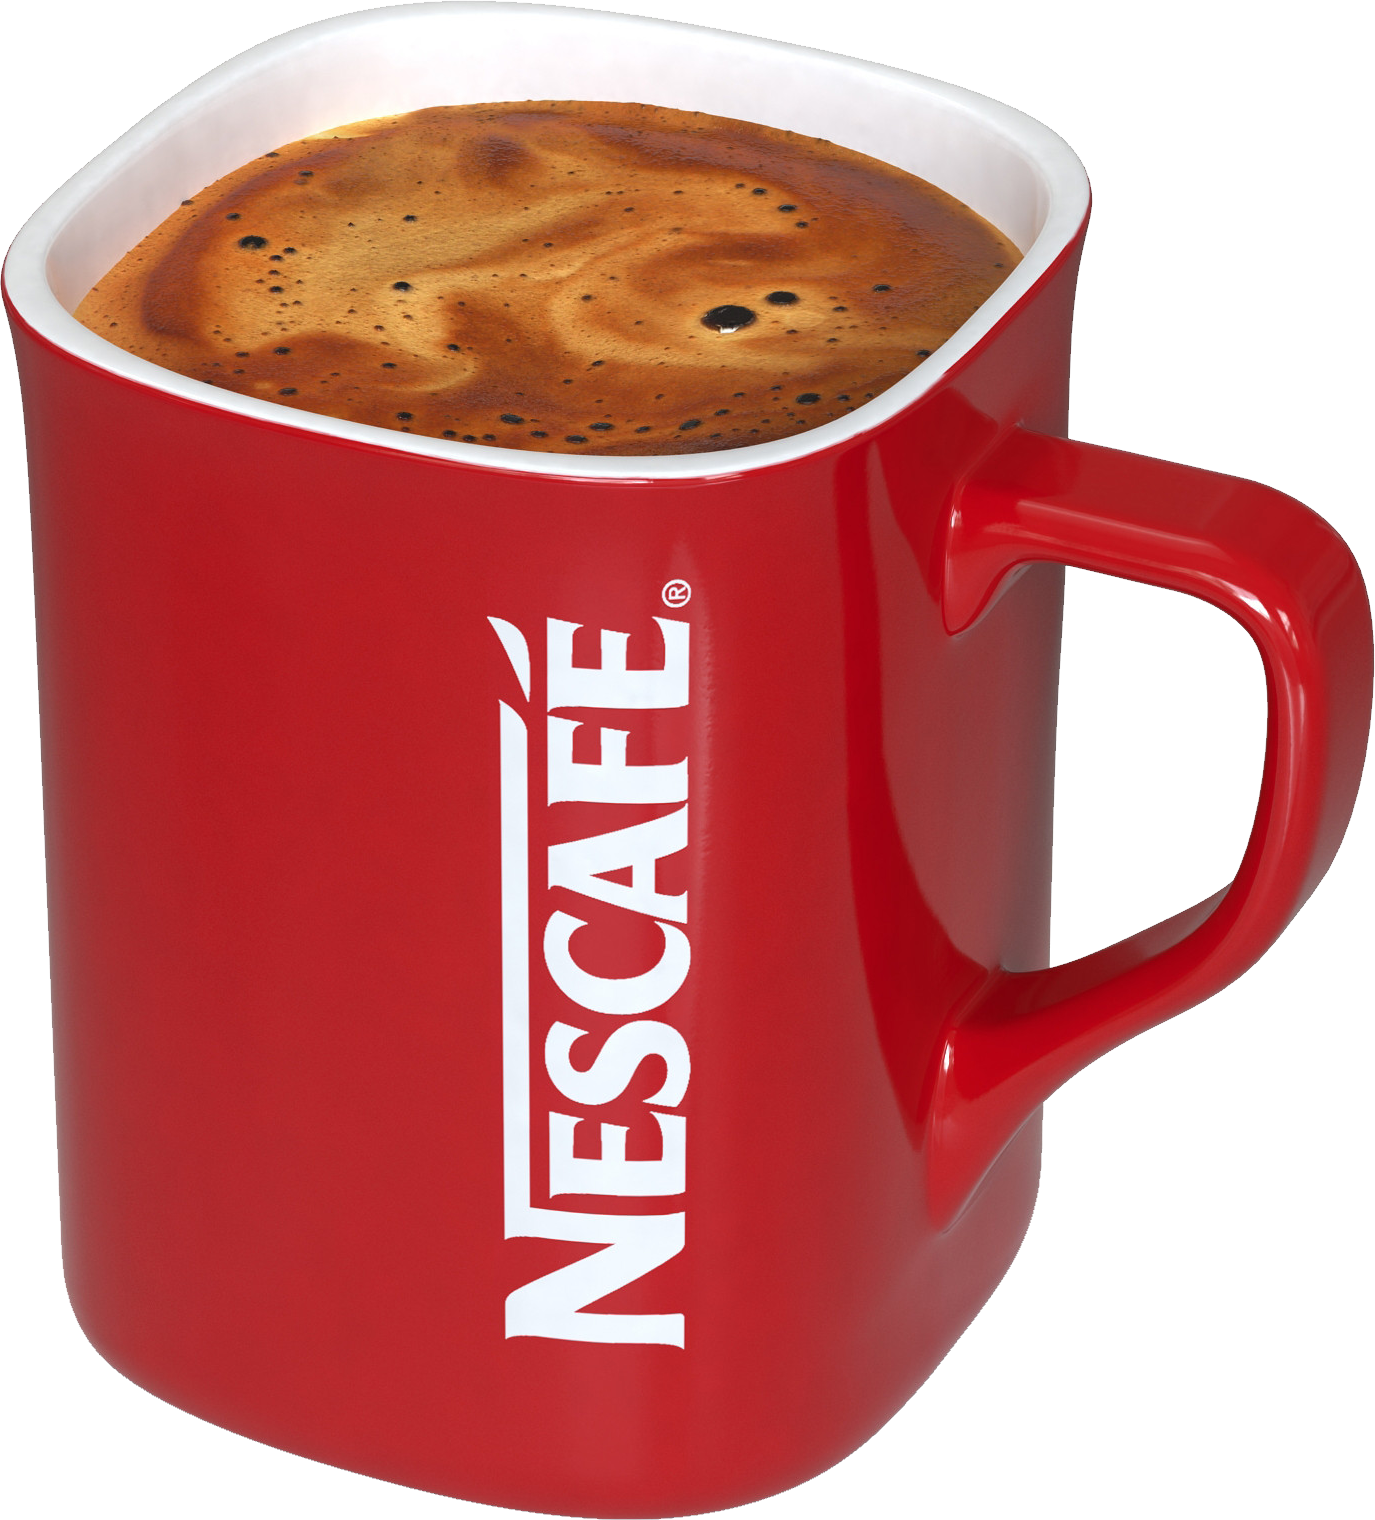 uploads mug coffee mug coffee PNG16880 64